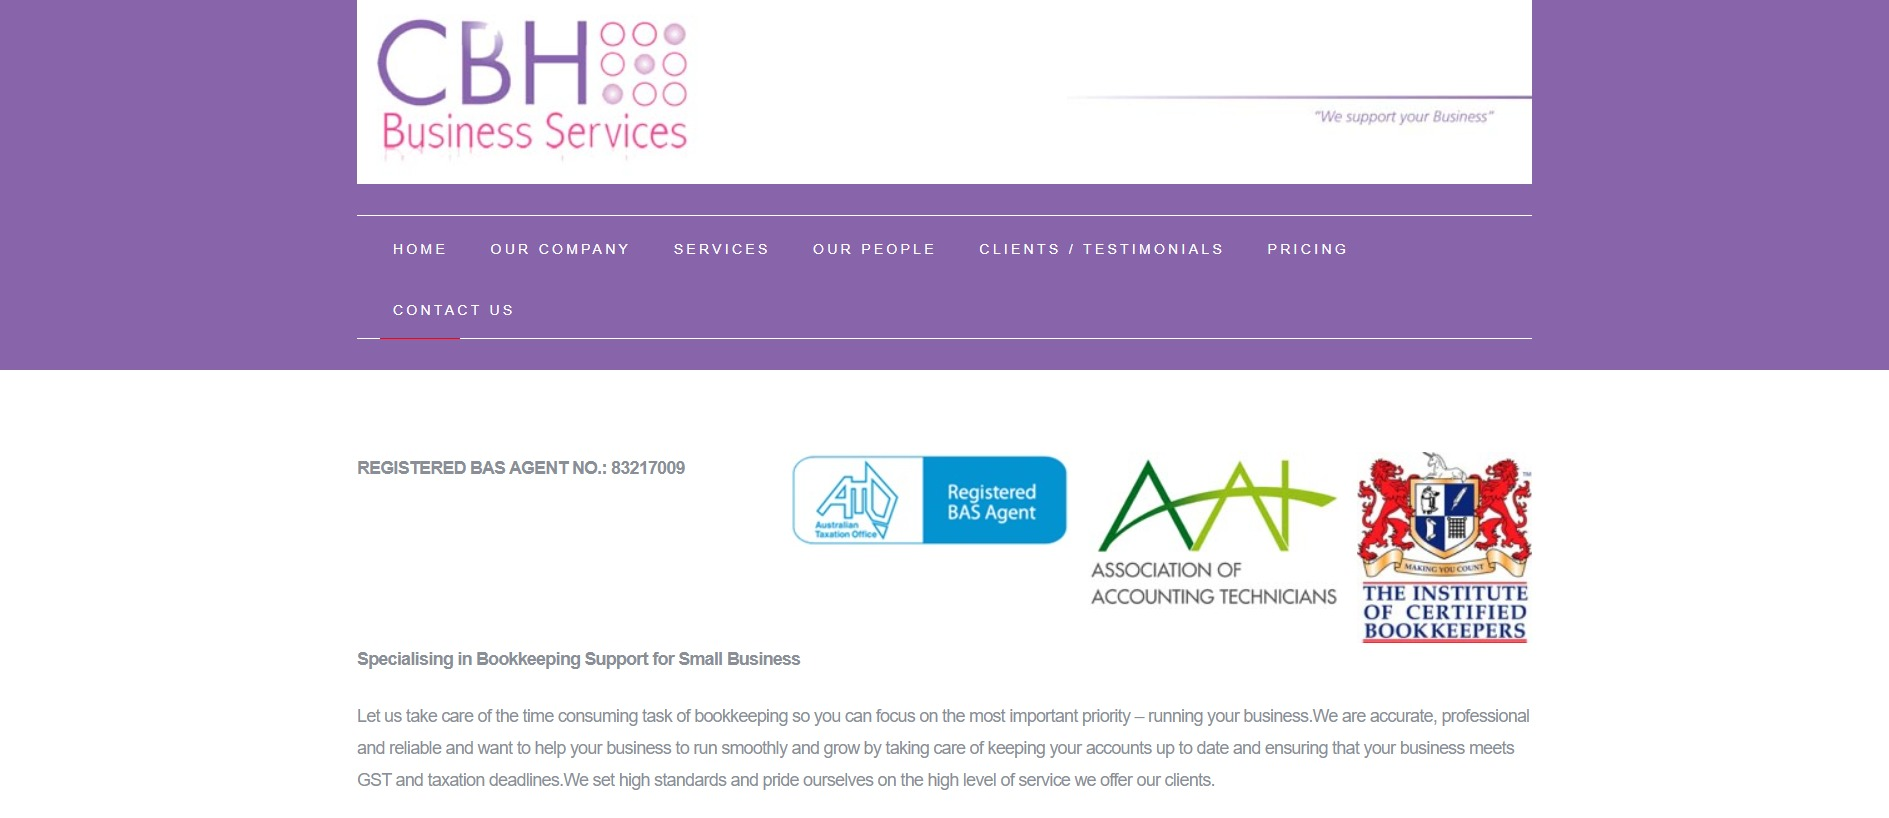 Cbh Business Services